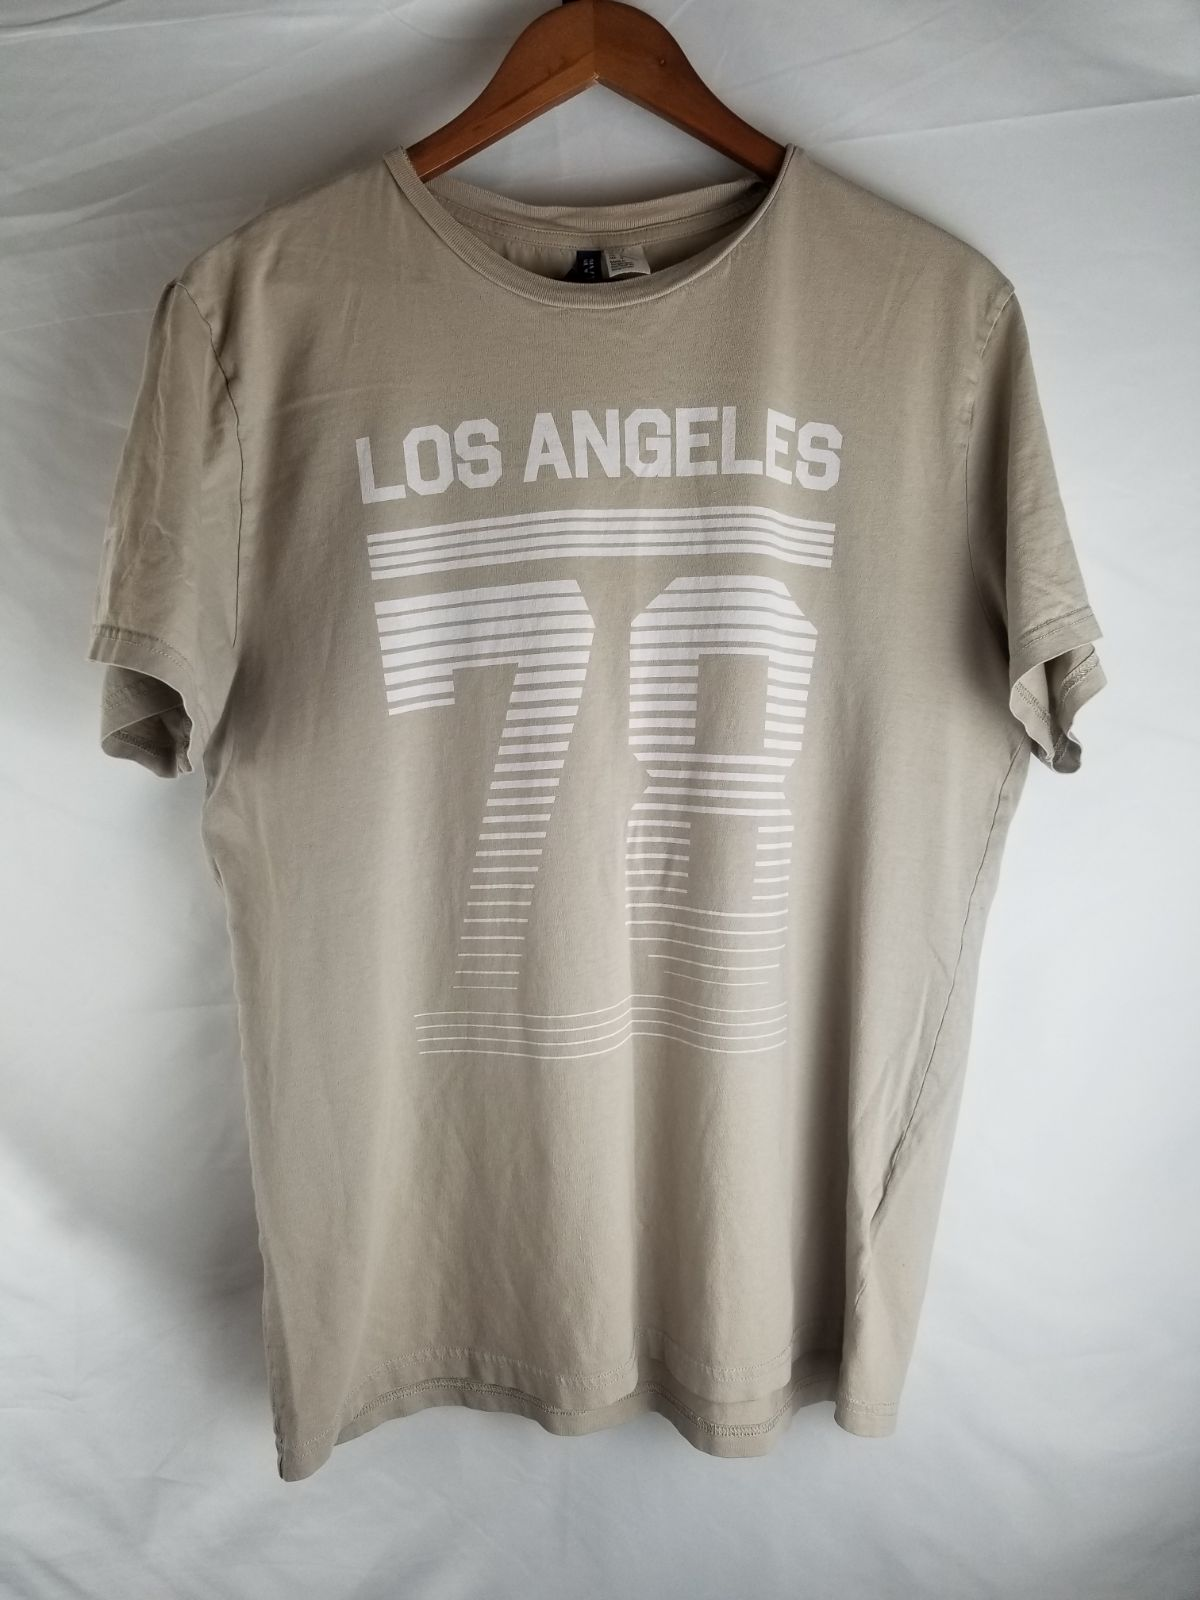 Los Angeles 78 T shirt Divided Lg